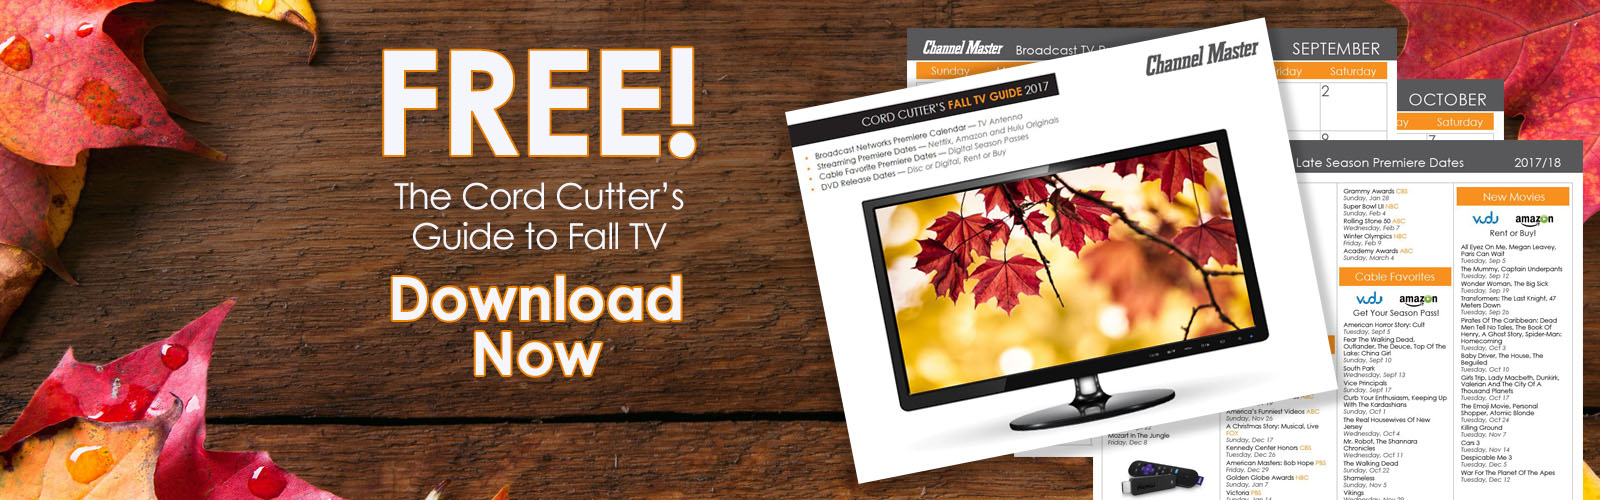 Cord Cutters Guide to Fall TV